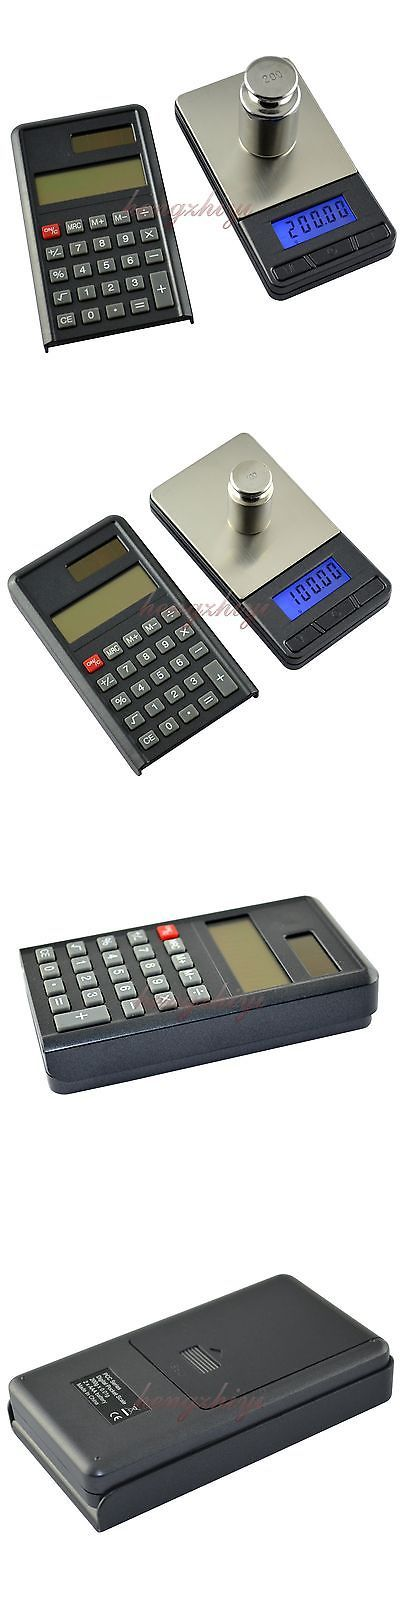 Pocket Digital Scales: Wholesale 10Pcs/Lot 200G X 0.01G Digital Pocket Scale Balance With Calculator -> BUY IT NOW ONLY: $138.0 on eBay!